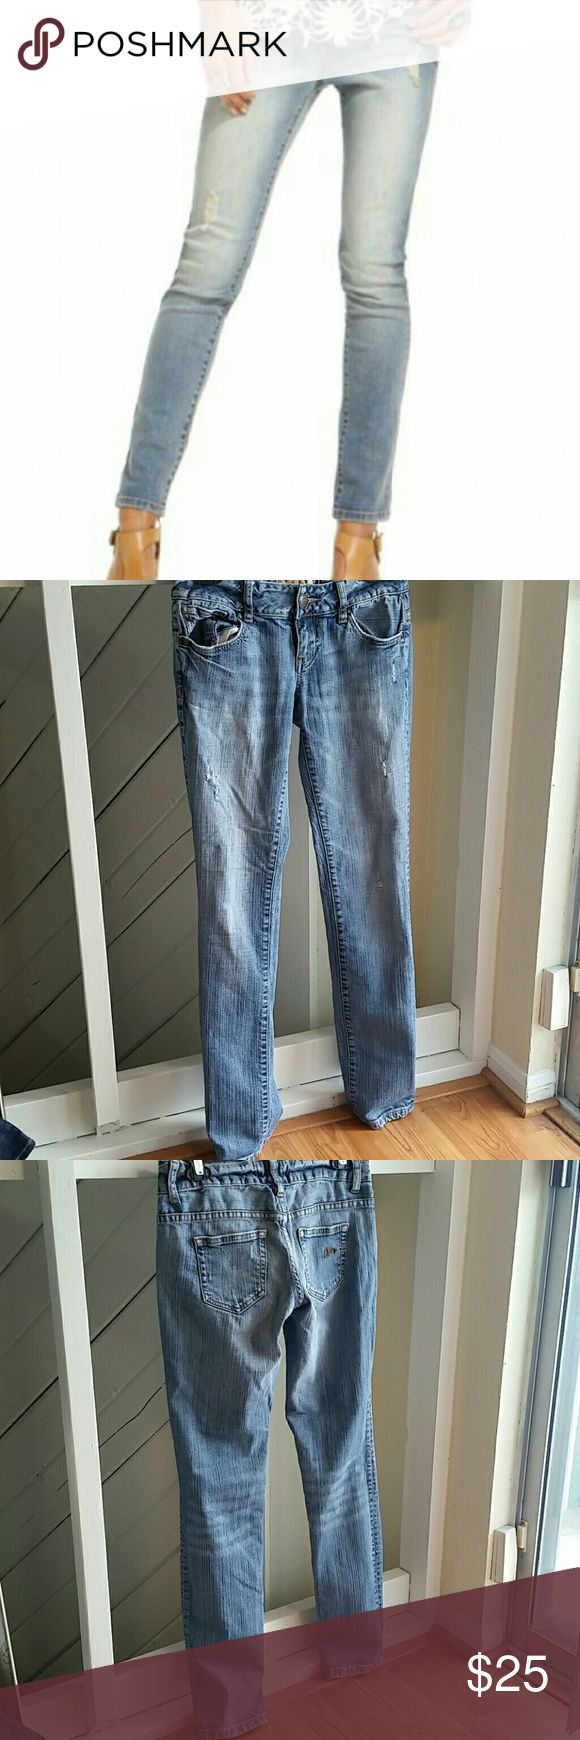 "AMERICAN RAG DESTROYED SKINNY JEANS Cute and trendy! Great with a blazer, T-shirt, and ankle boots! Excellent pre-owned condition, no visible flaws. Inseam: 31.5"". 98% cotton, 2% spandex. Size 3R American Rag Jeans Skinny"